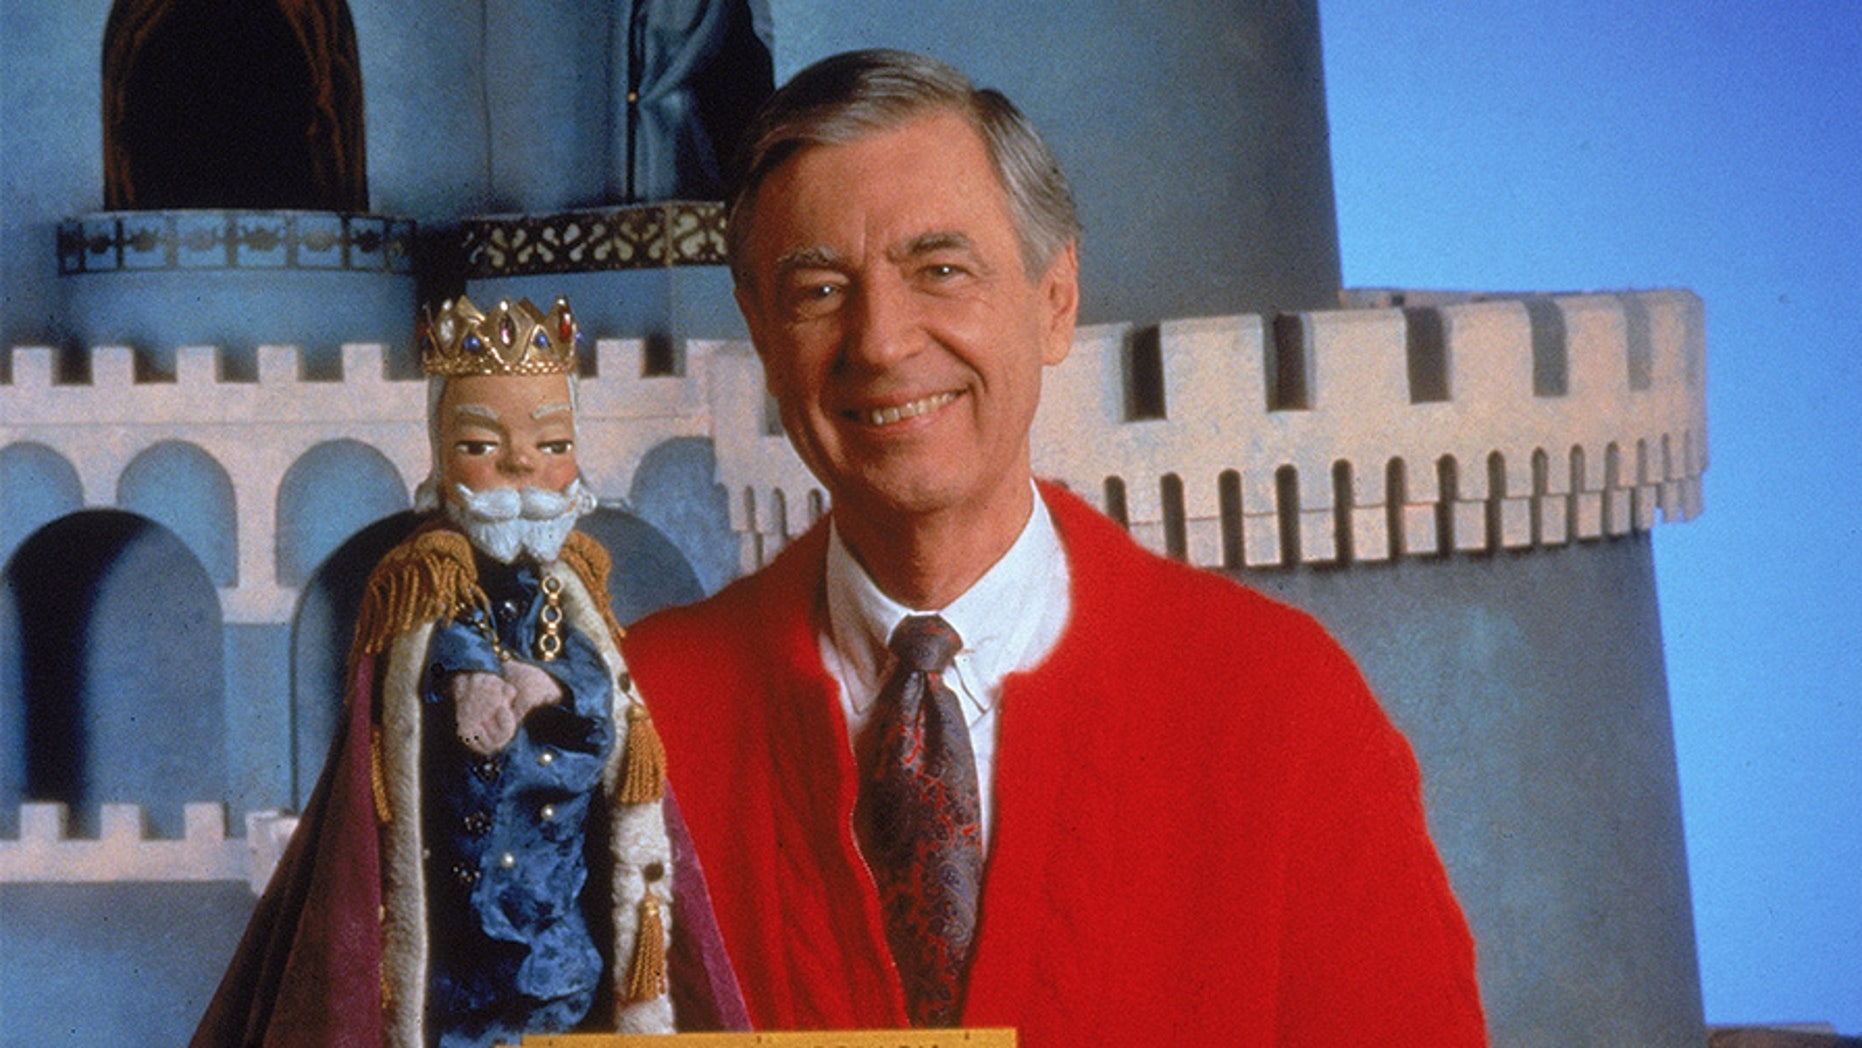 Mister Rogers Was Very Serious About How Tv Could Impact Kids Biographer Recalls Fox News